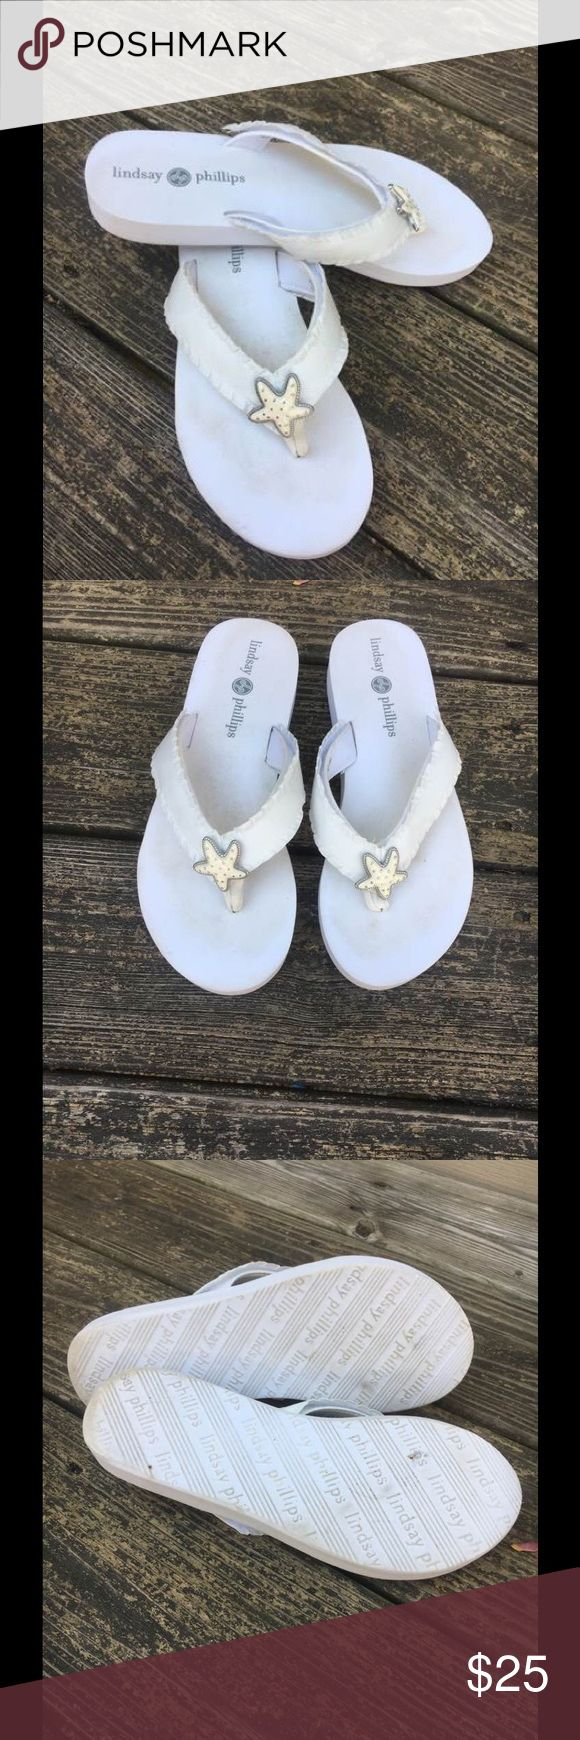 Lindsay Phillips 🏖White Switch Flops w/starfish White Lindsay Phillips Switch Flops Flip Flops. Very good condition. The straps are attached with Velcro and can be switched with other straps. Star fish decoration on strap. Both the straps and Switch Flop can be washed off. Lindsay Phillips Shoes Sandals